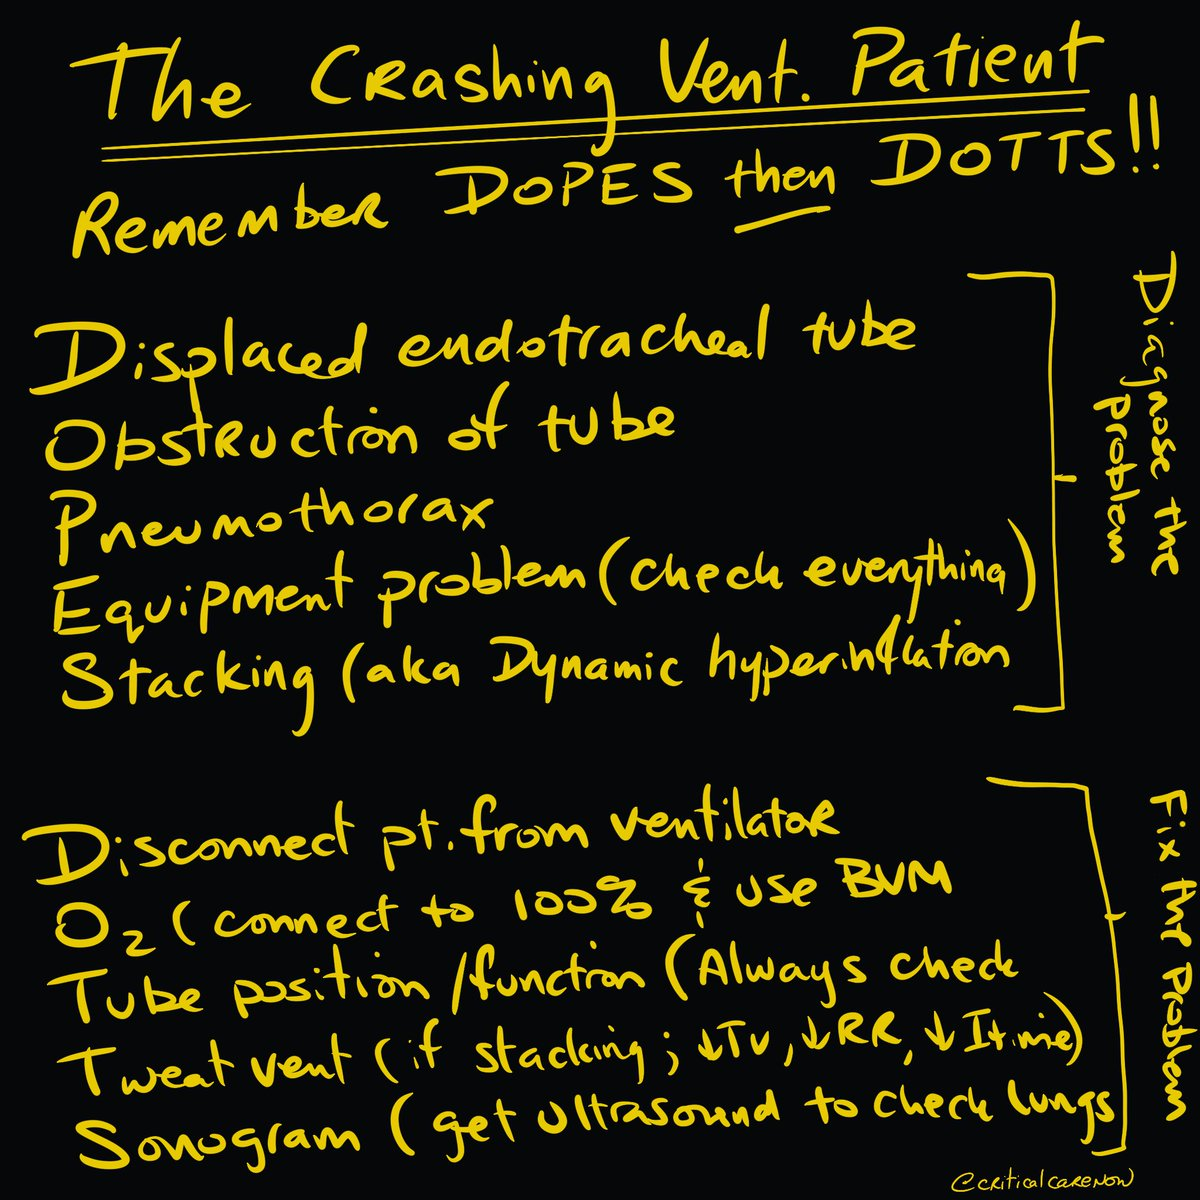 If you missed this week's #CritBits on the crashing ventilated patient, here's a summary ...but you should really watch the video youtu.be/sWCs4PQb9Tc You'll like it or we'll give you a full refund #FOAMED #FOAmcc